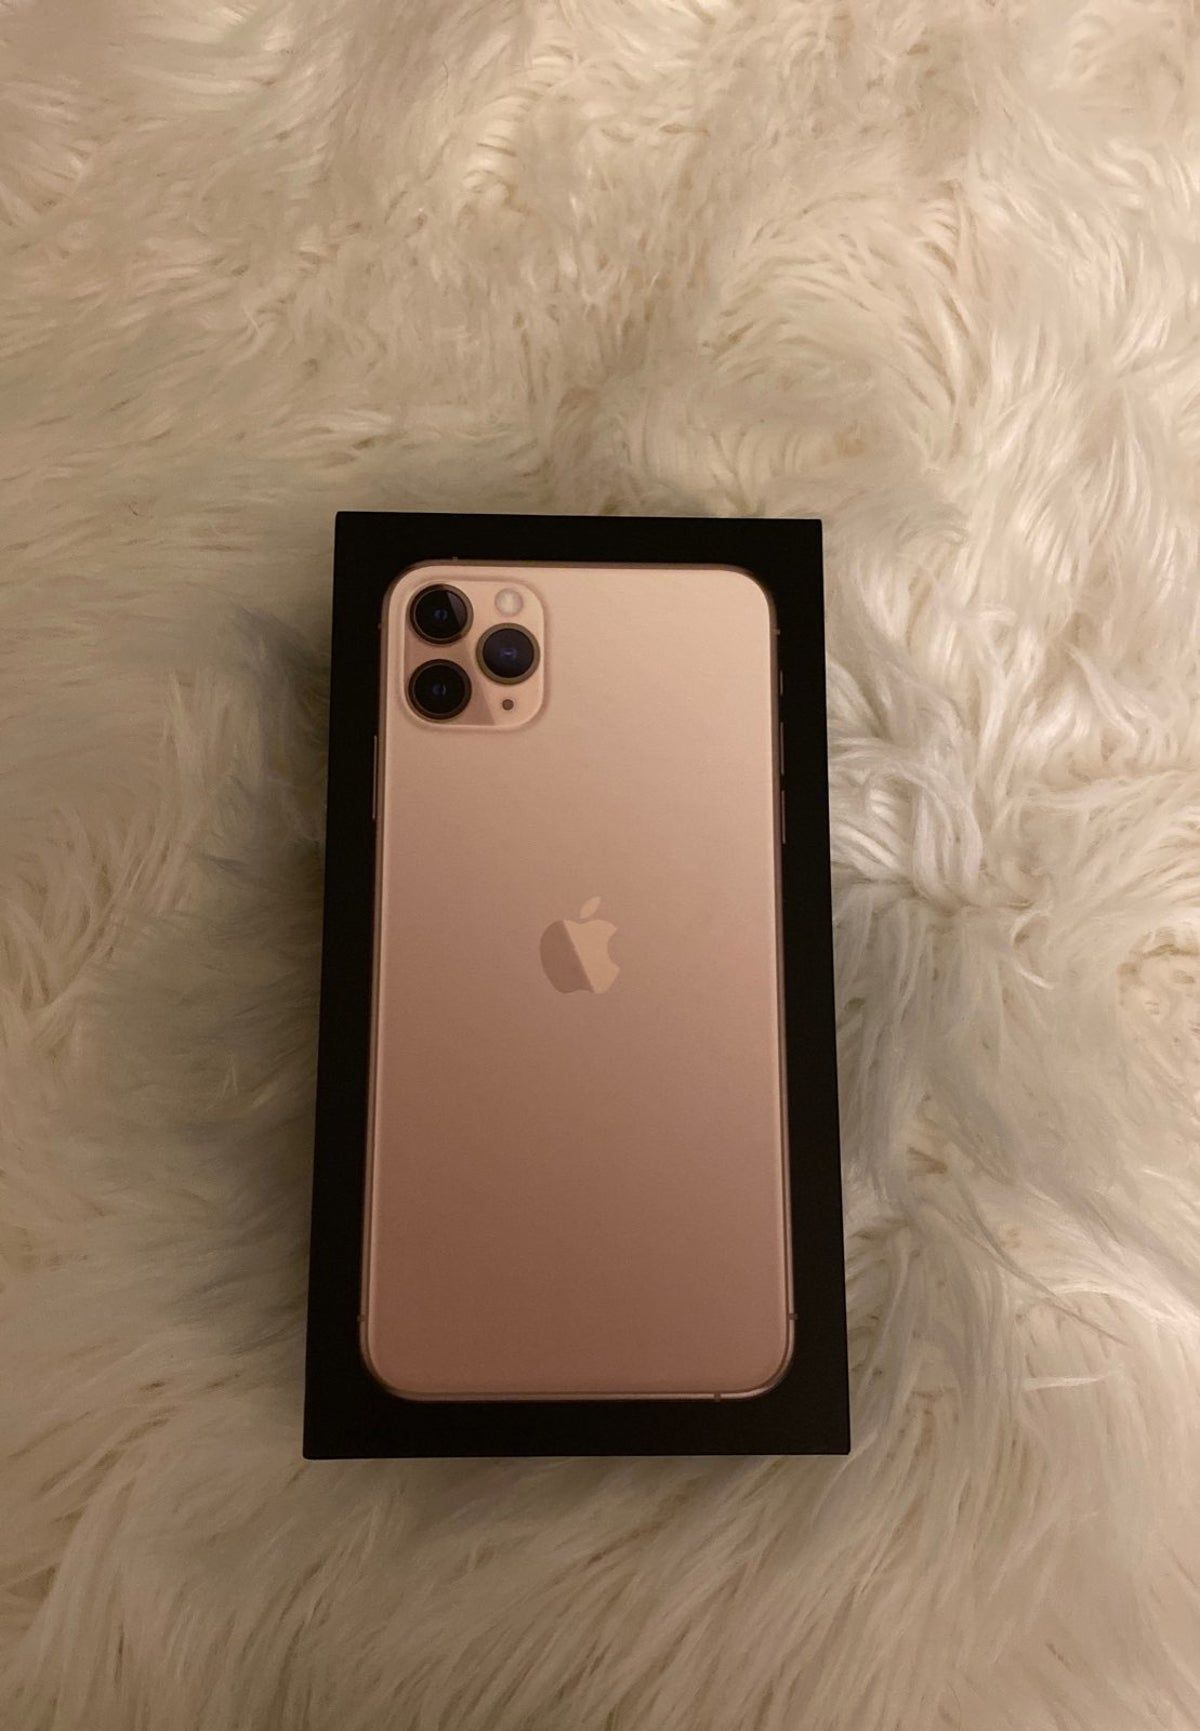 Iphone 11 Pro Max Gold Box In 2020 Iphone Apple Iphone Accessories Iphone Phone Cases